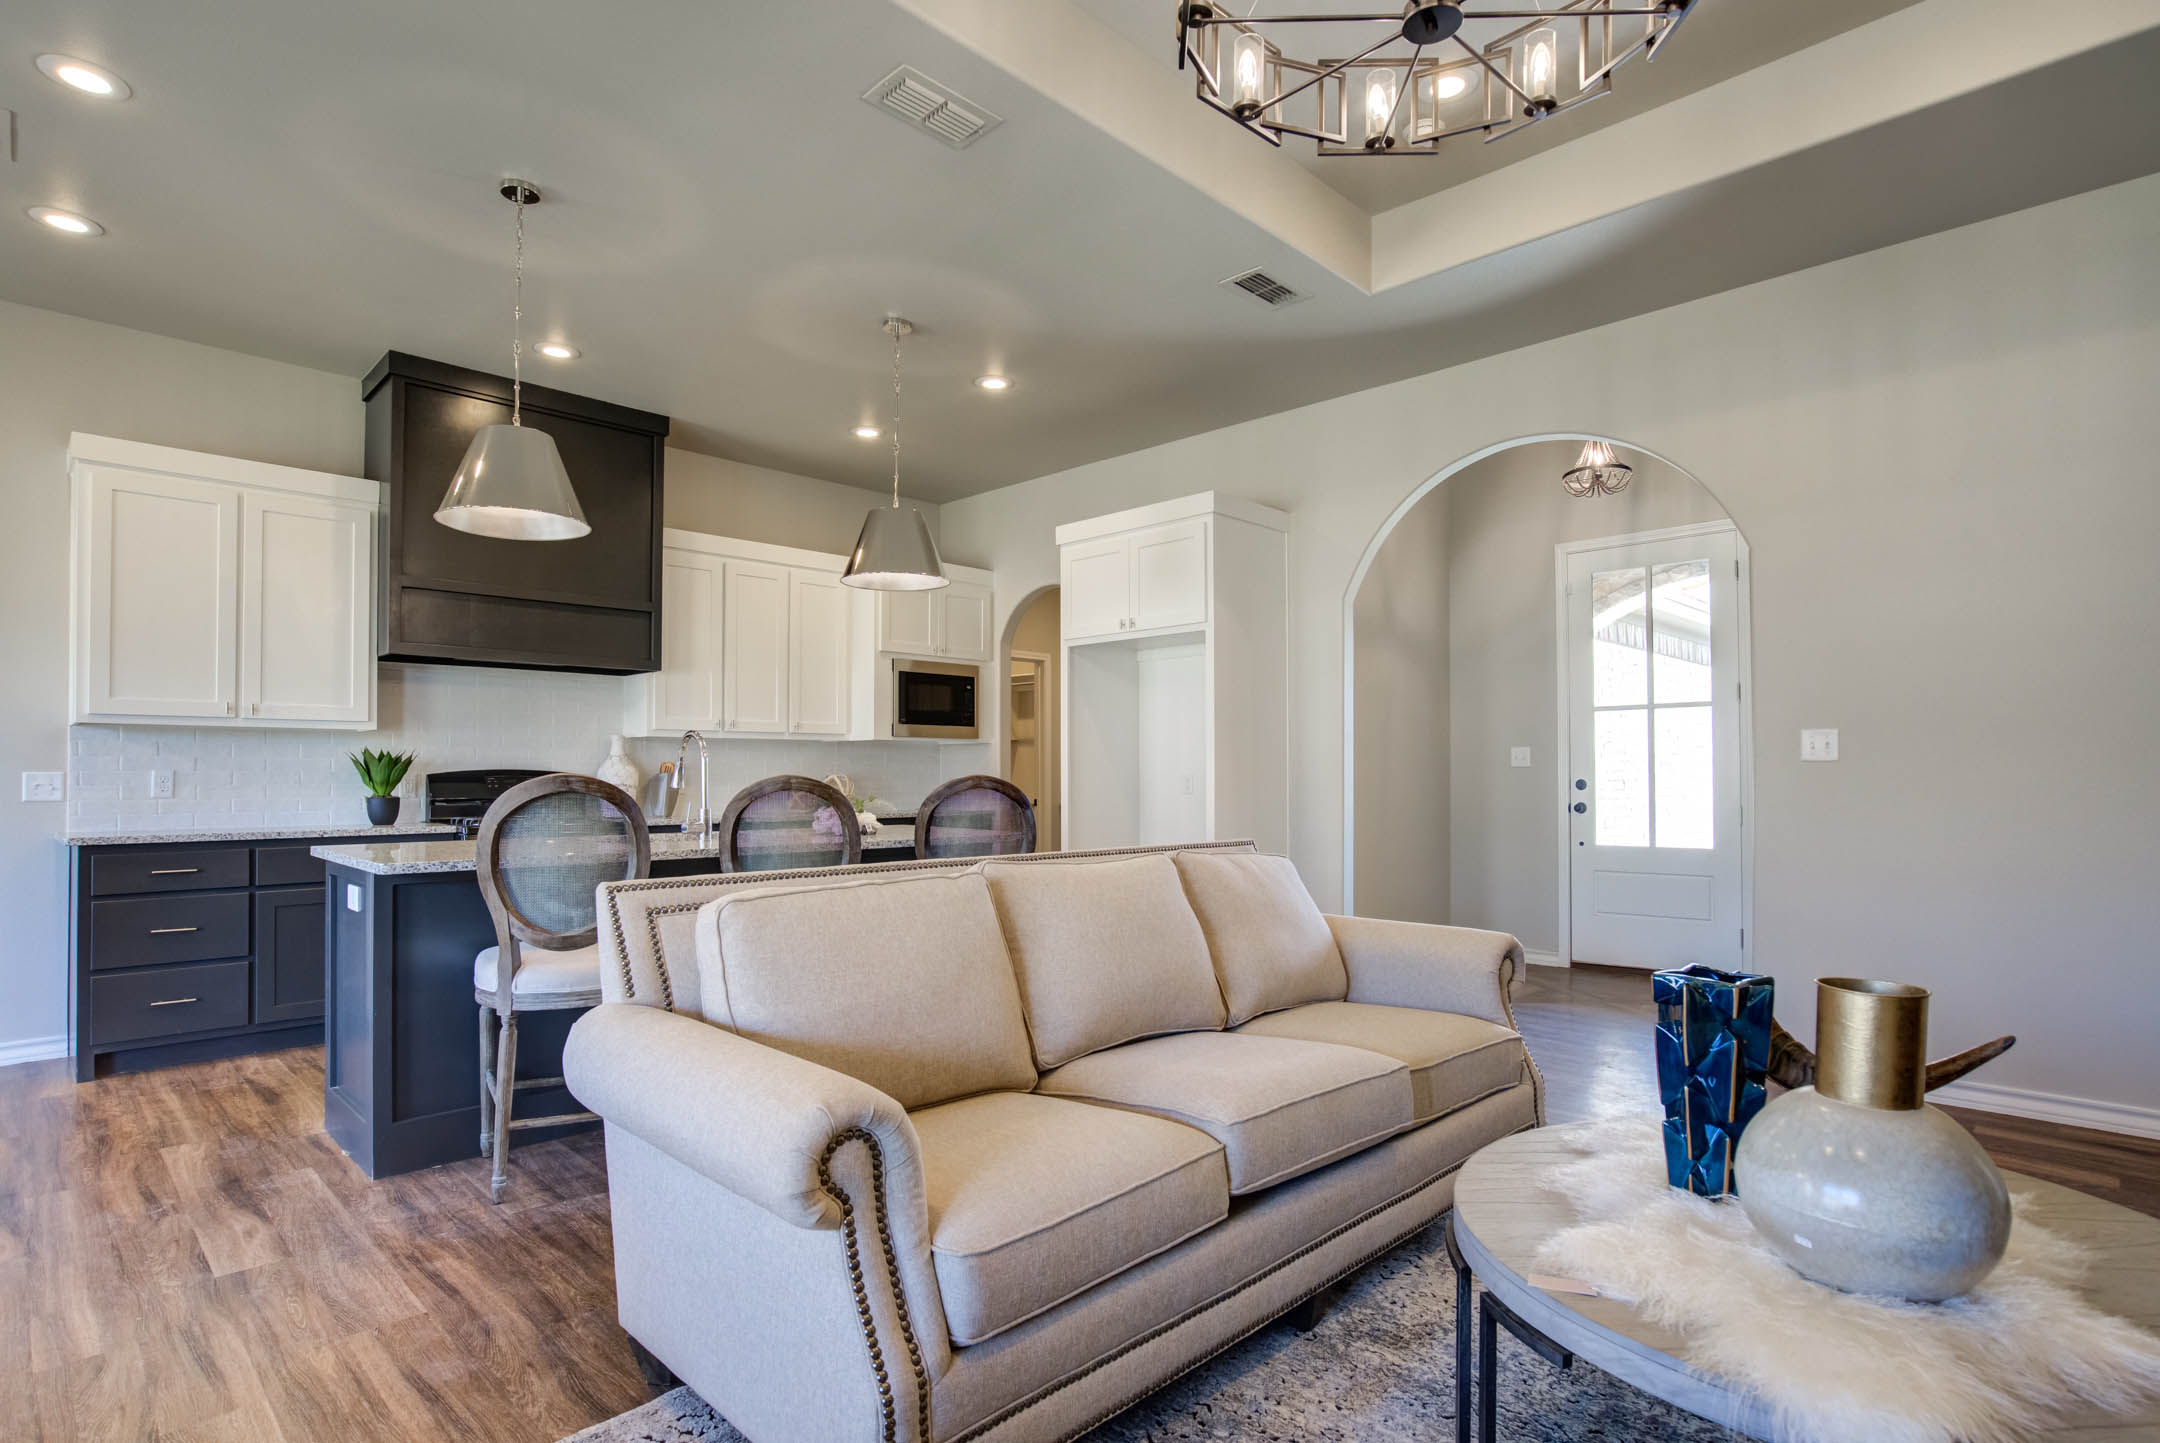 Lovely living room in new home for sale in Lubbock, Texas.